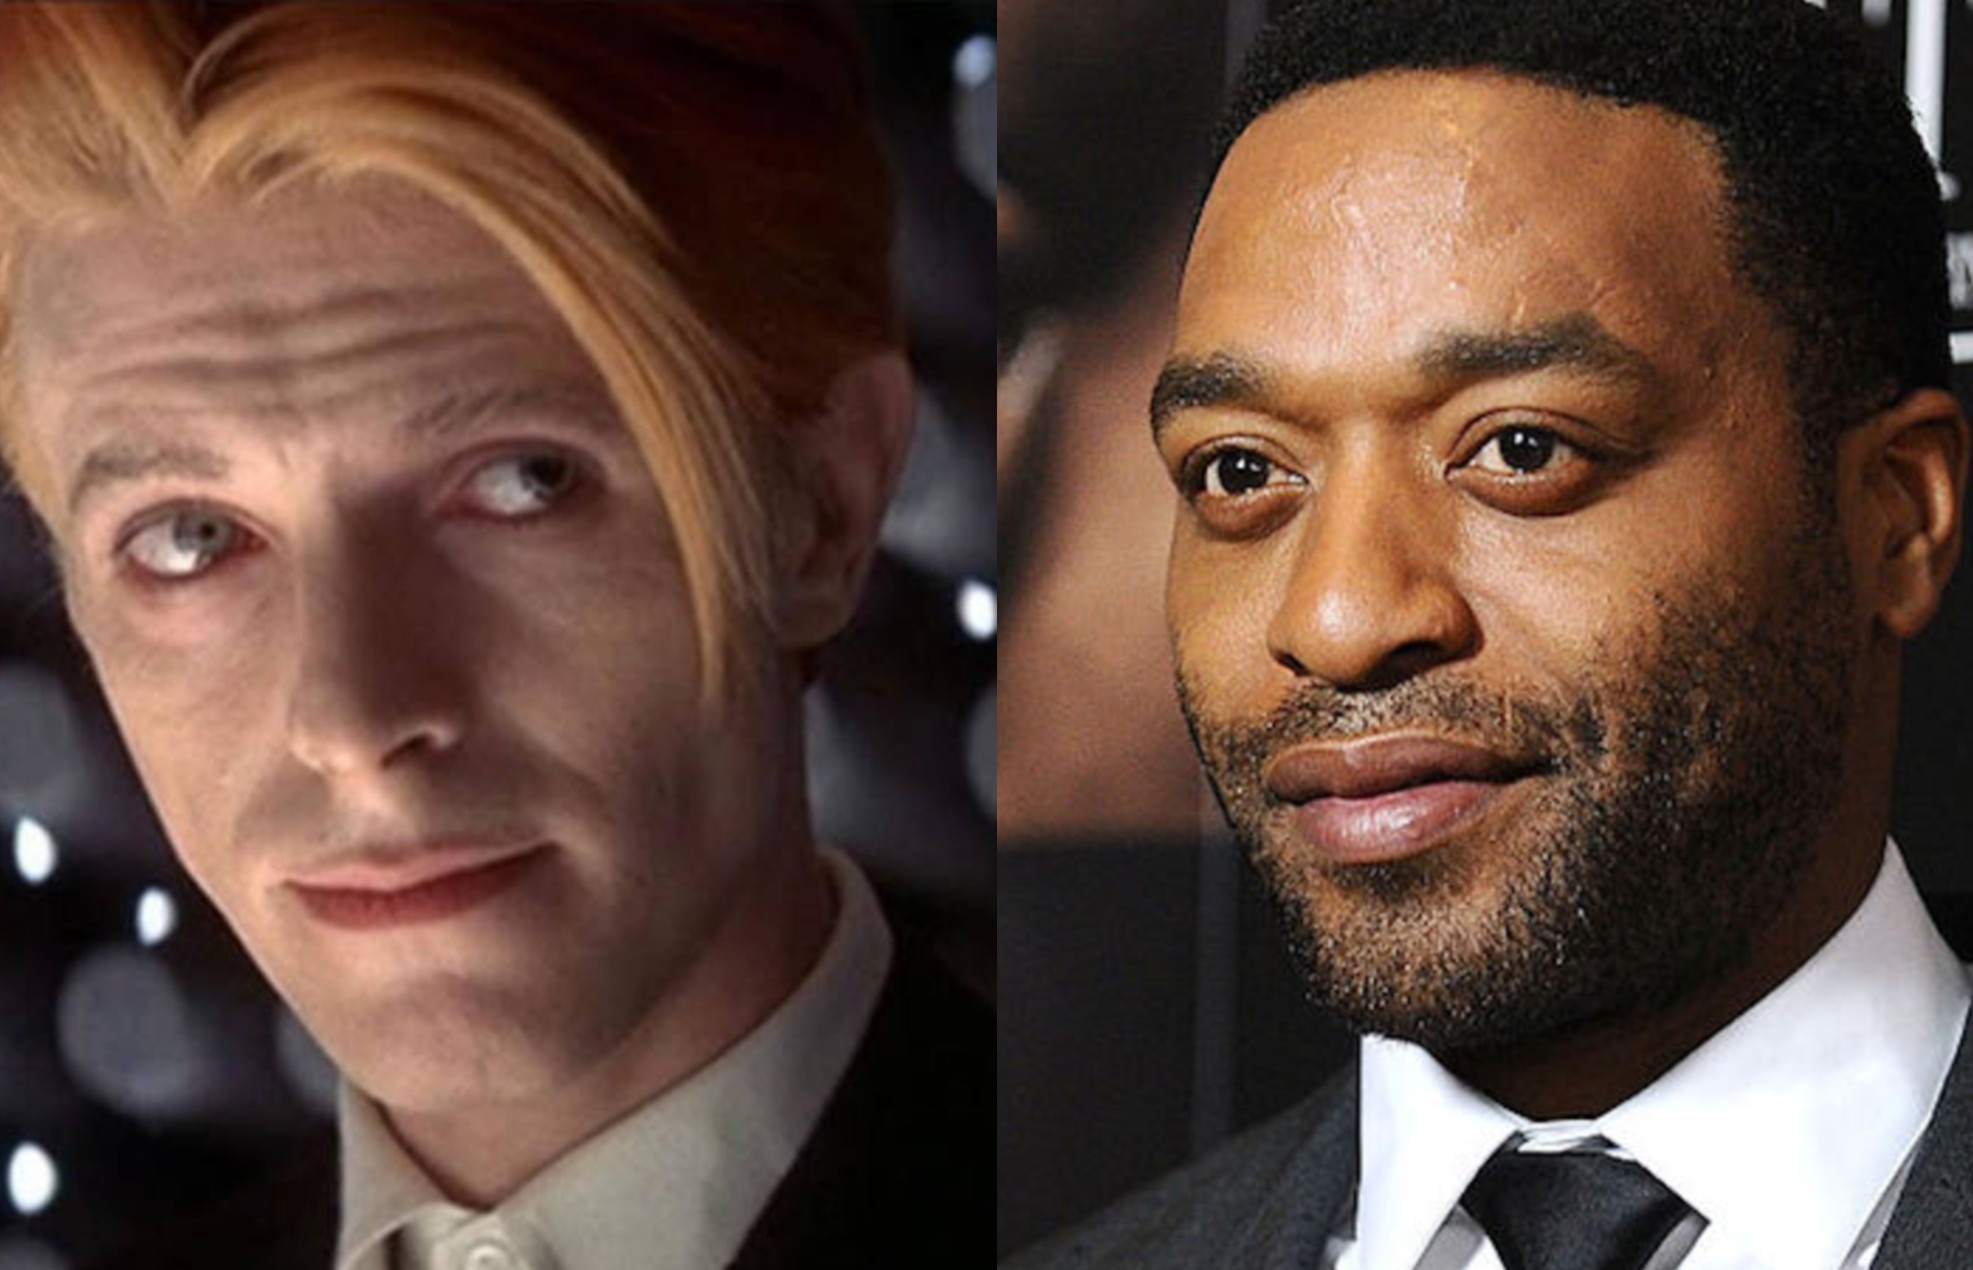 Chiwetel Ejiofor David Bowie The Man Who Fell to Earth